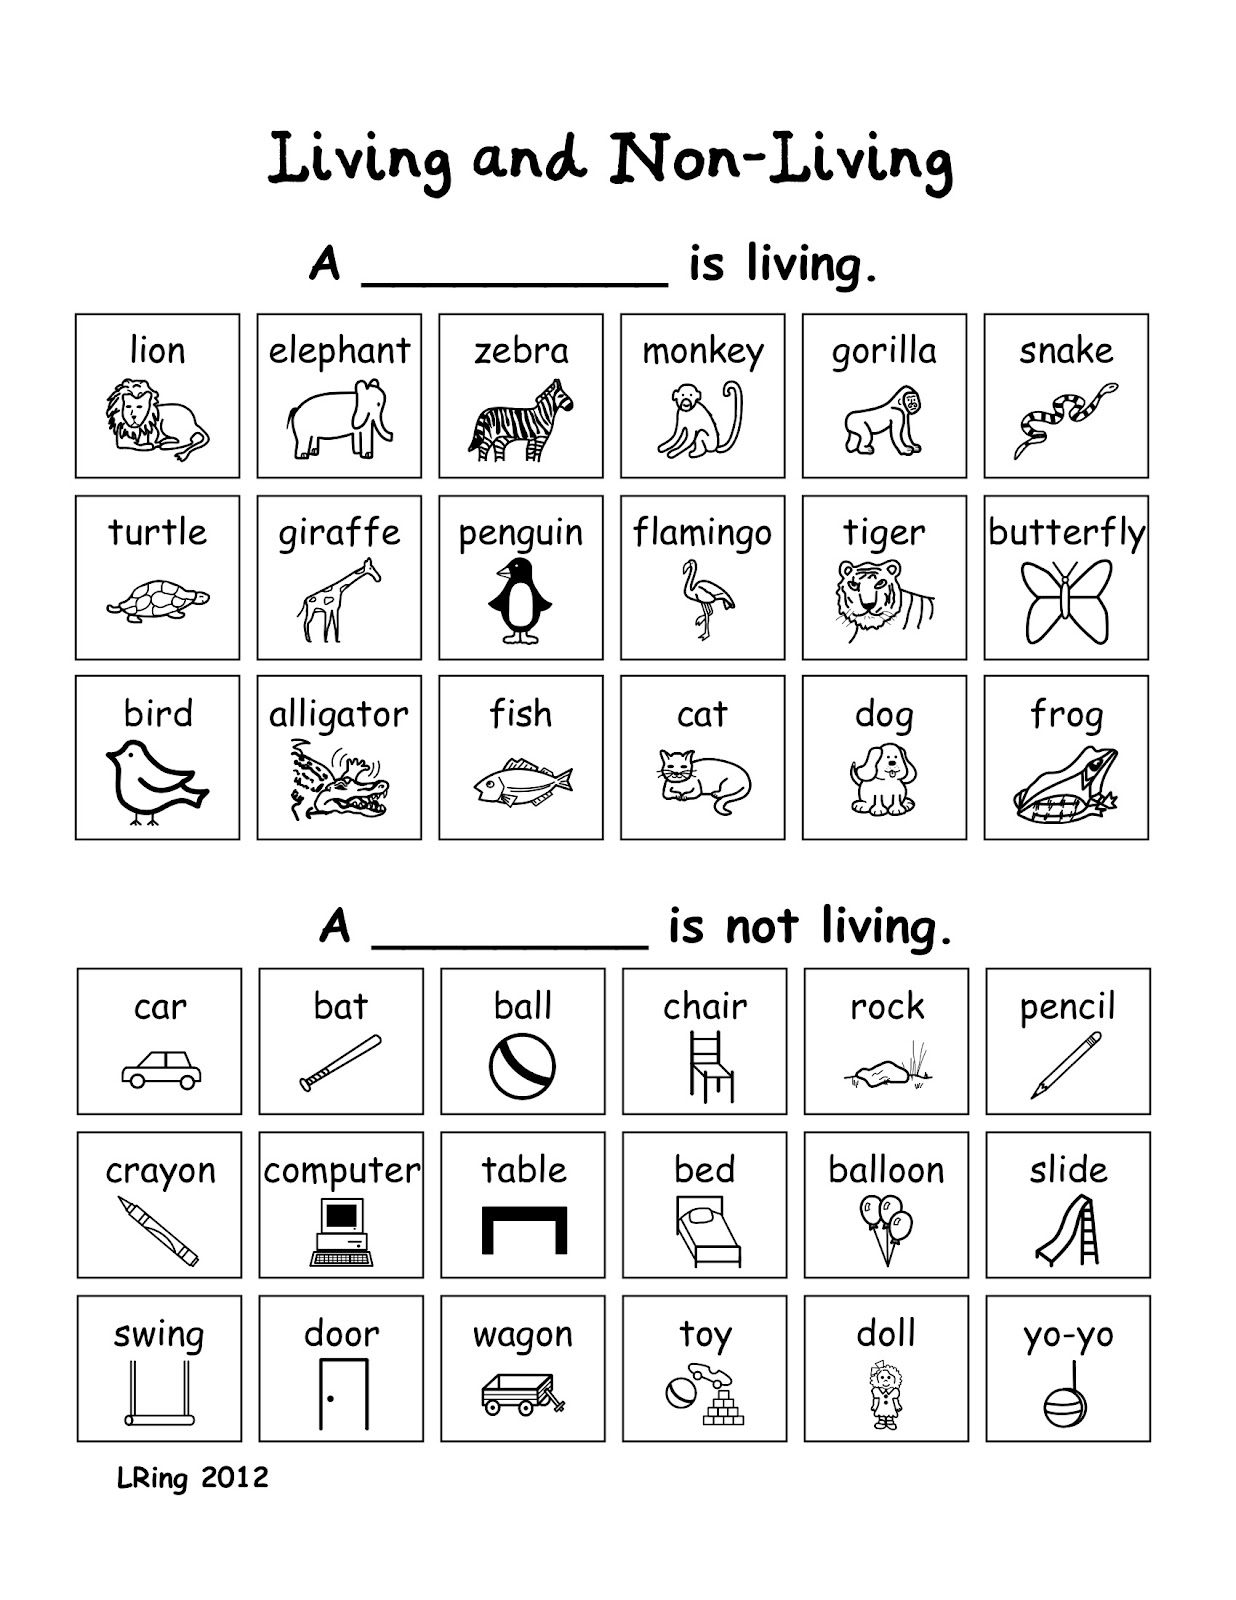 Worksheets Living And Nonliving Worksheet living non teachers of india living